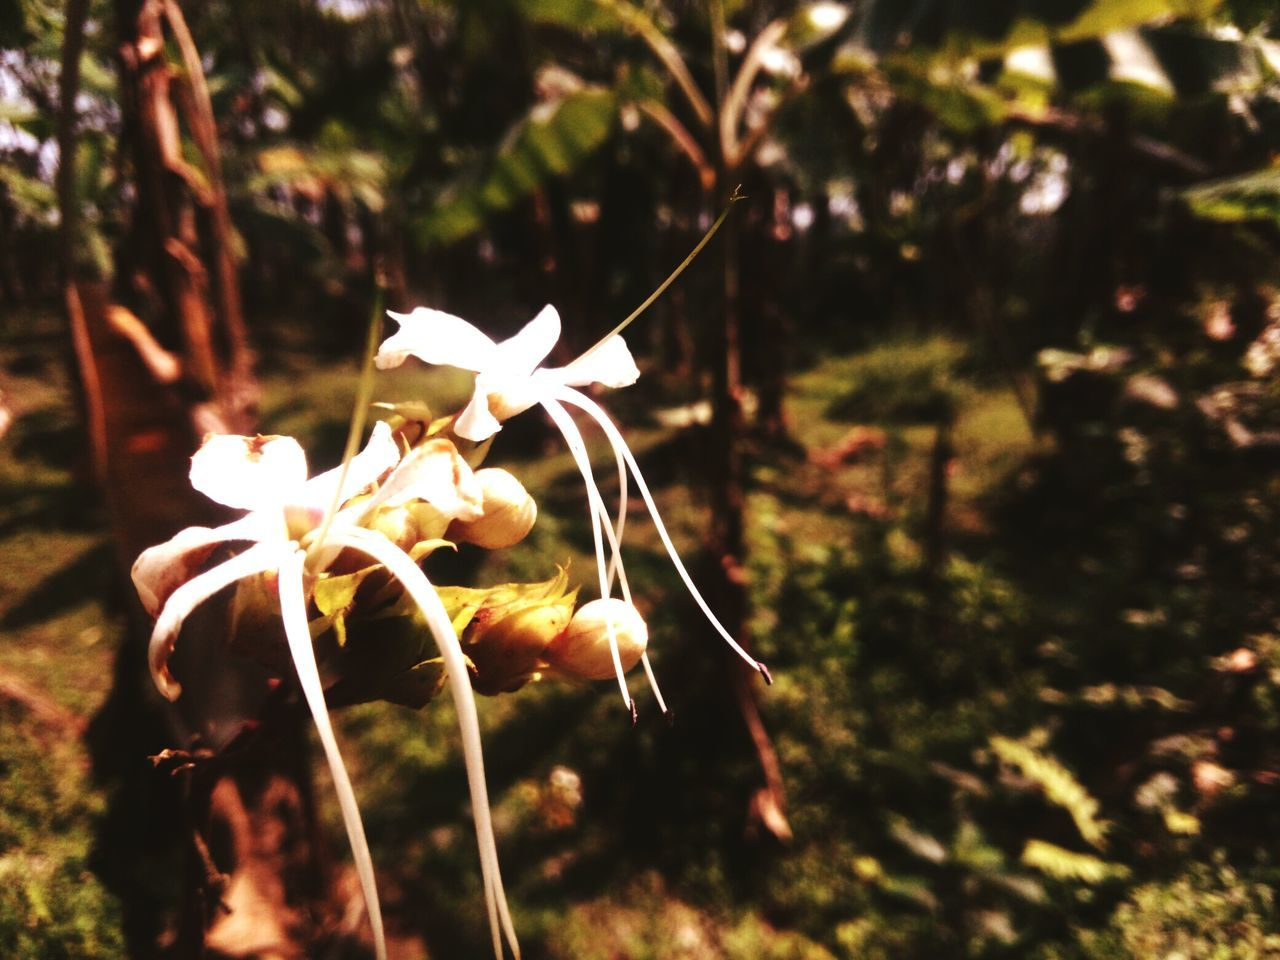 flower, growth, fragility, nature, petal, plant, beauty in nature, flower head, outdoors, freshness, close-up, no people, day, focus on foreground, blooming